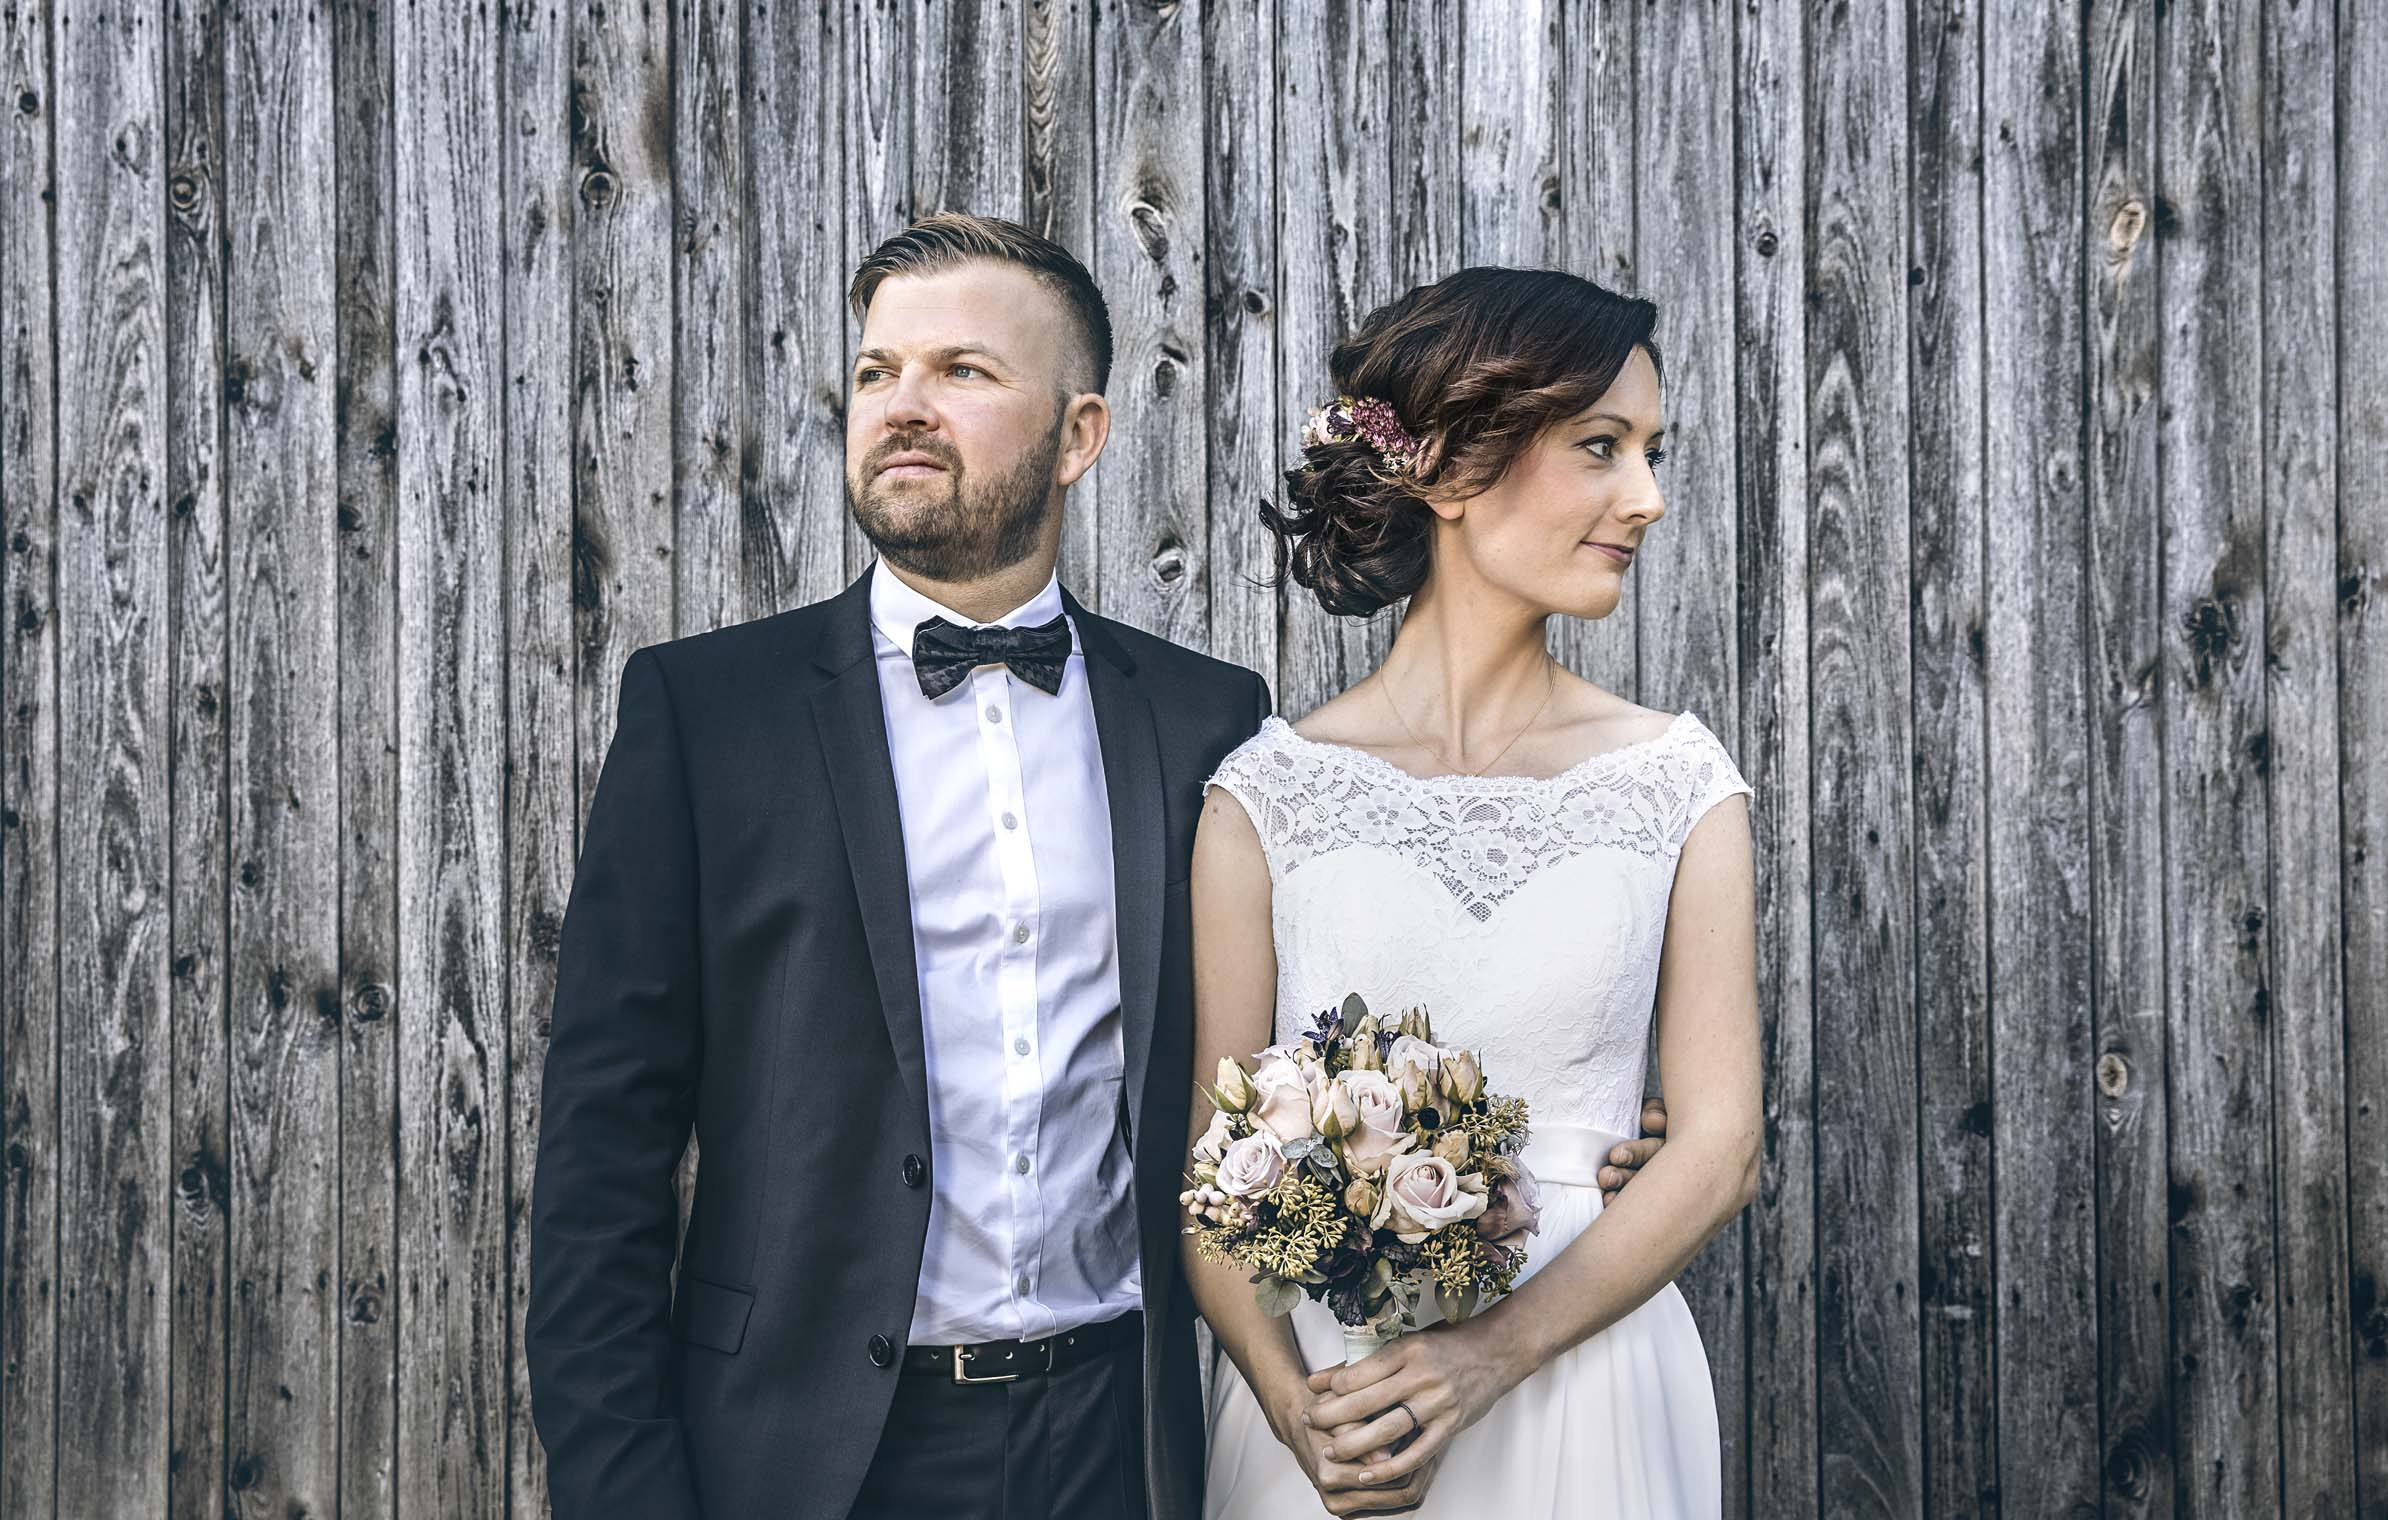 wedding_thomas_simone_bride_groom_braut_bräutigam_couple5